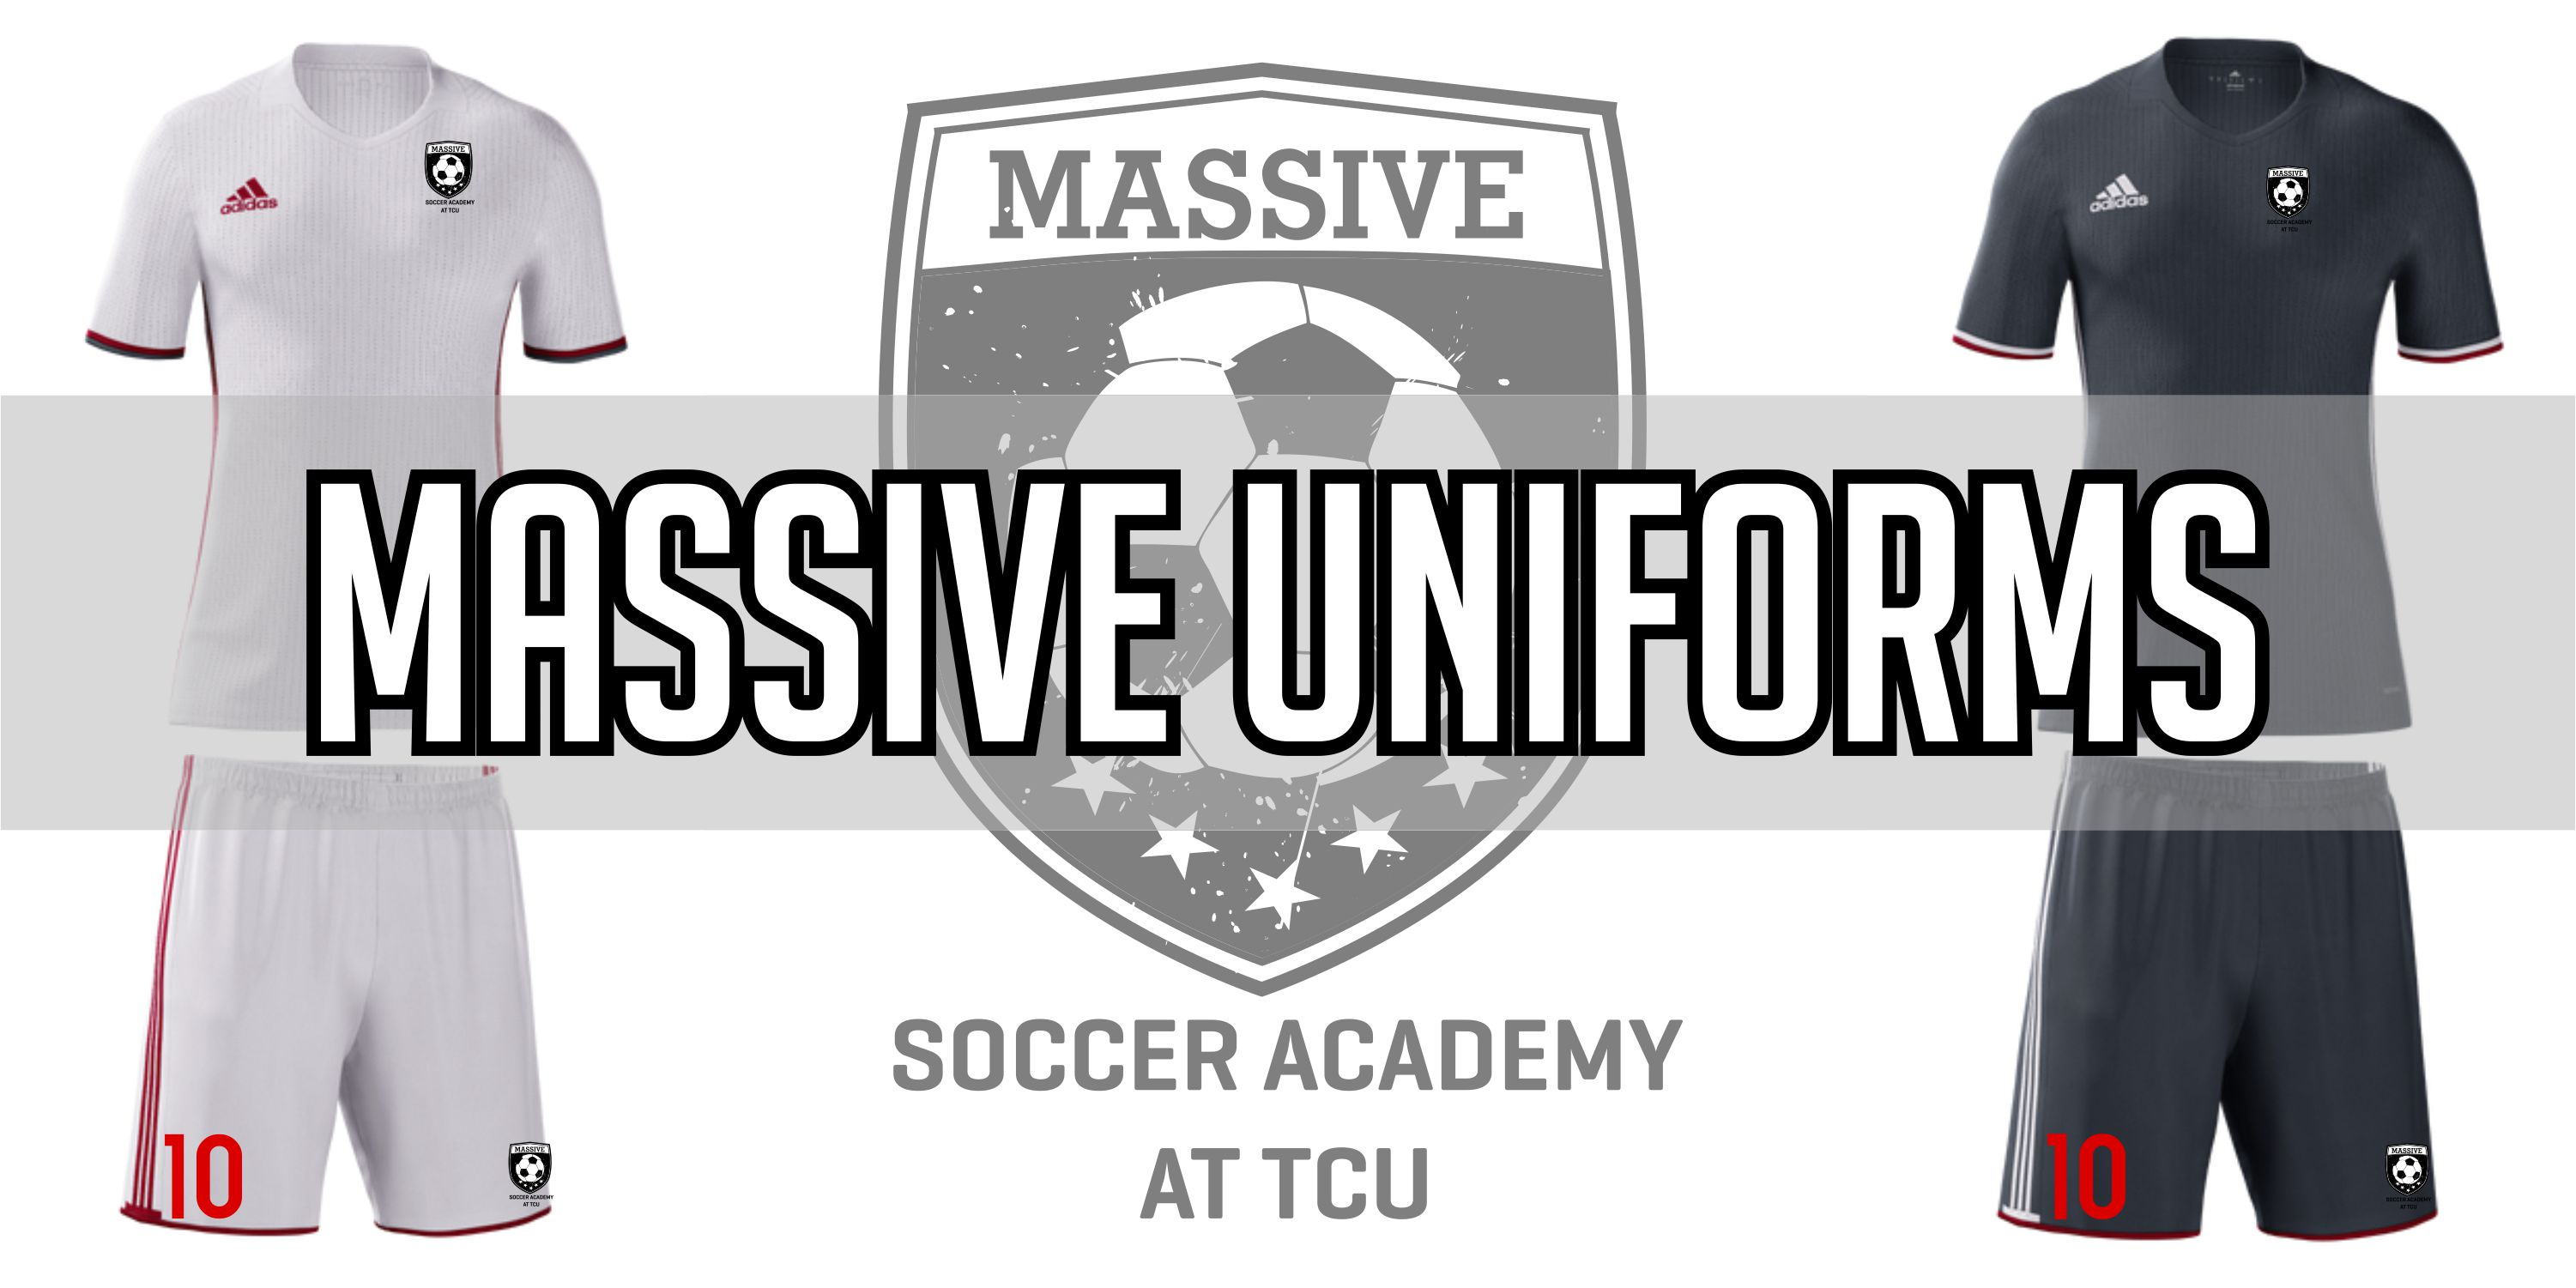 Massive Soccer Academy Uniforms